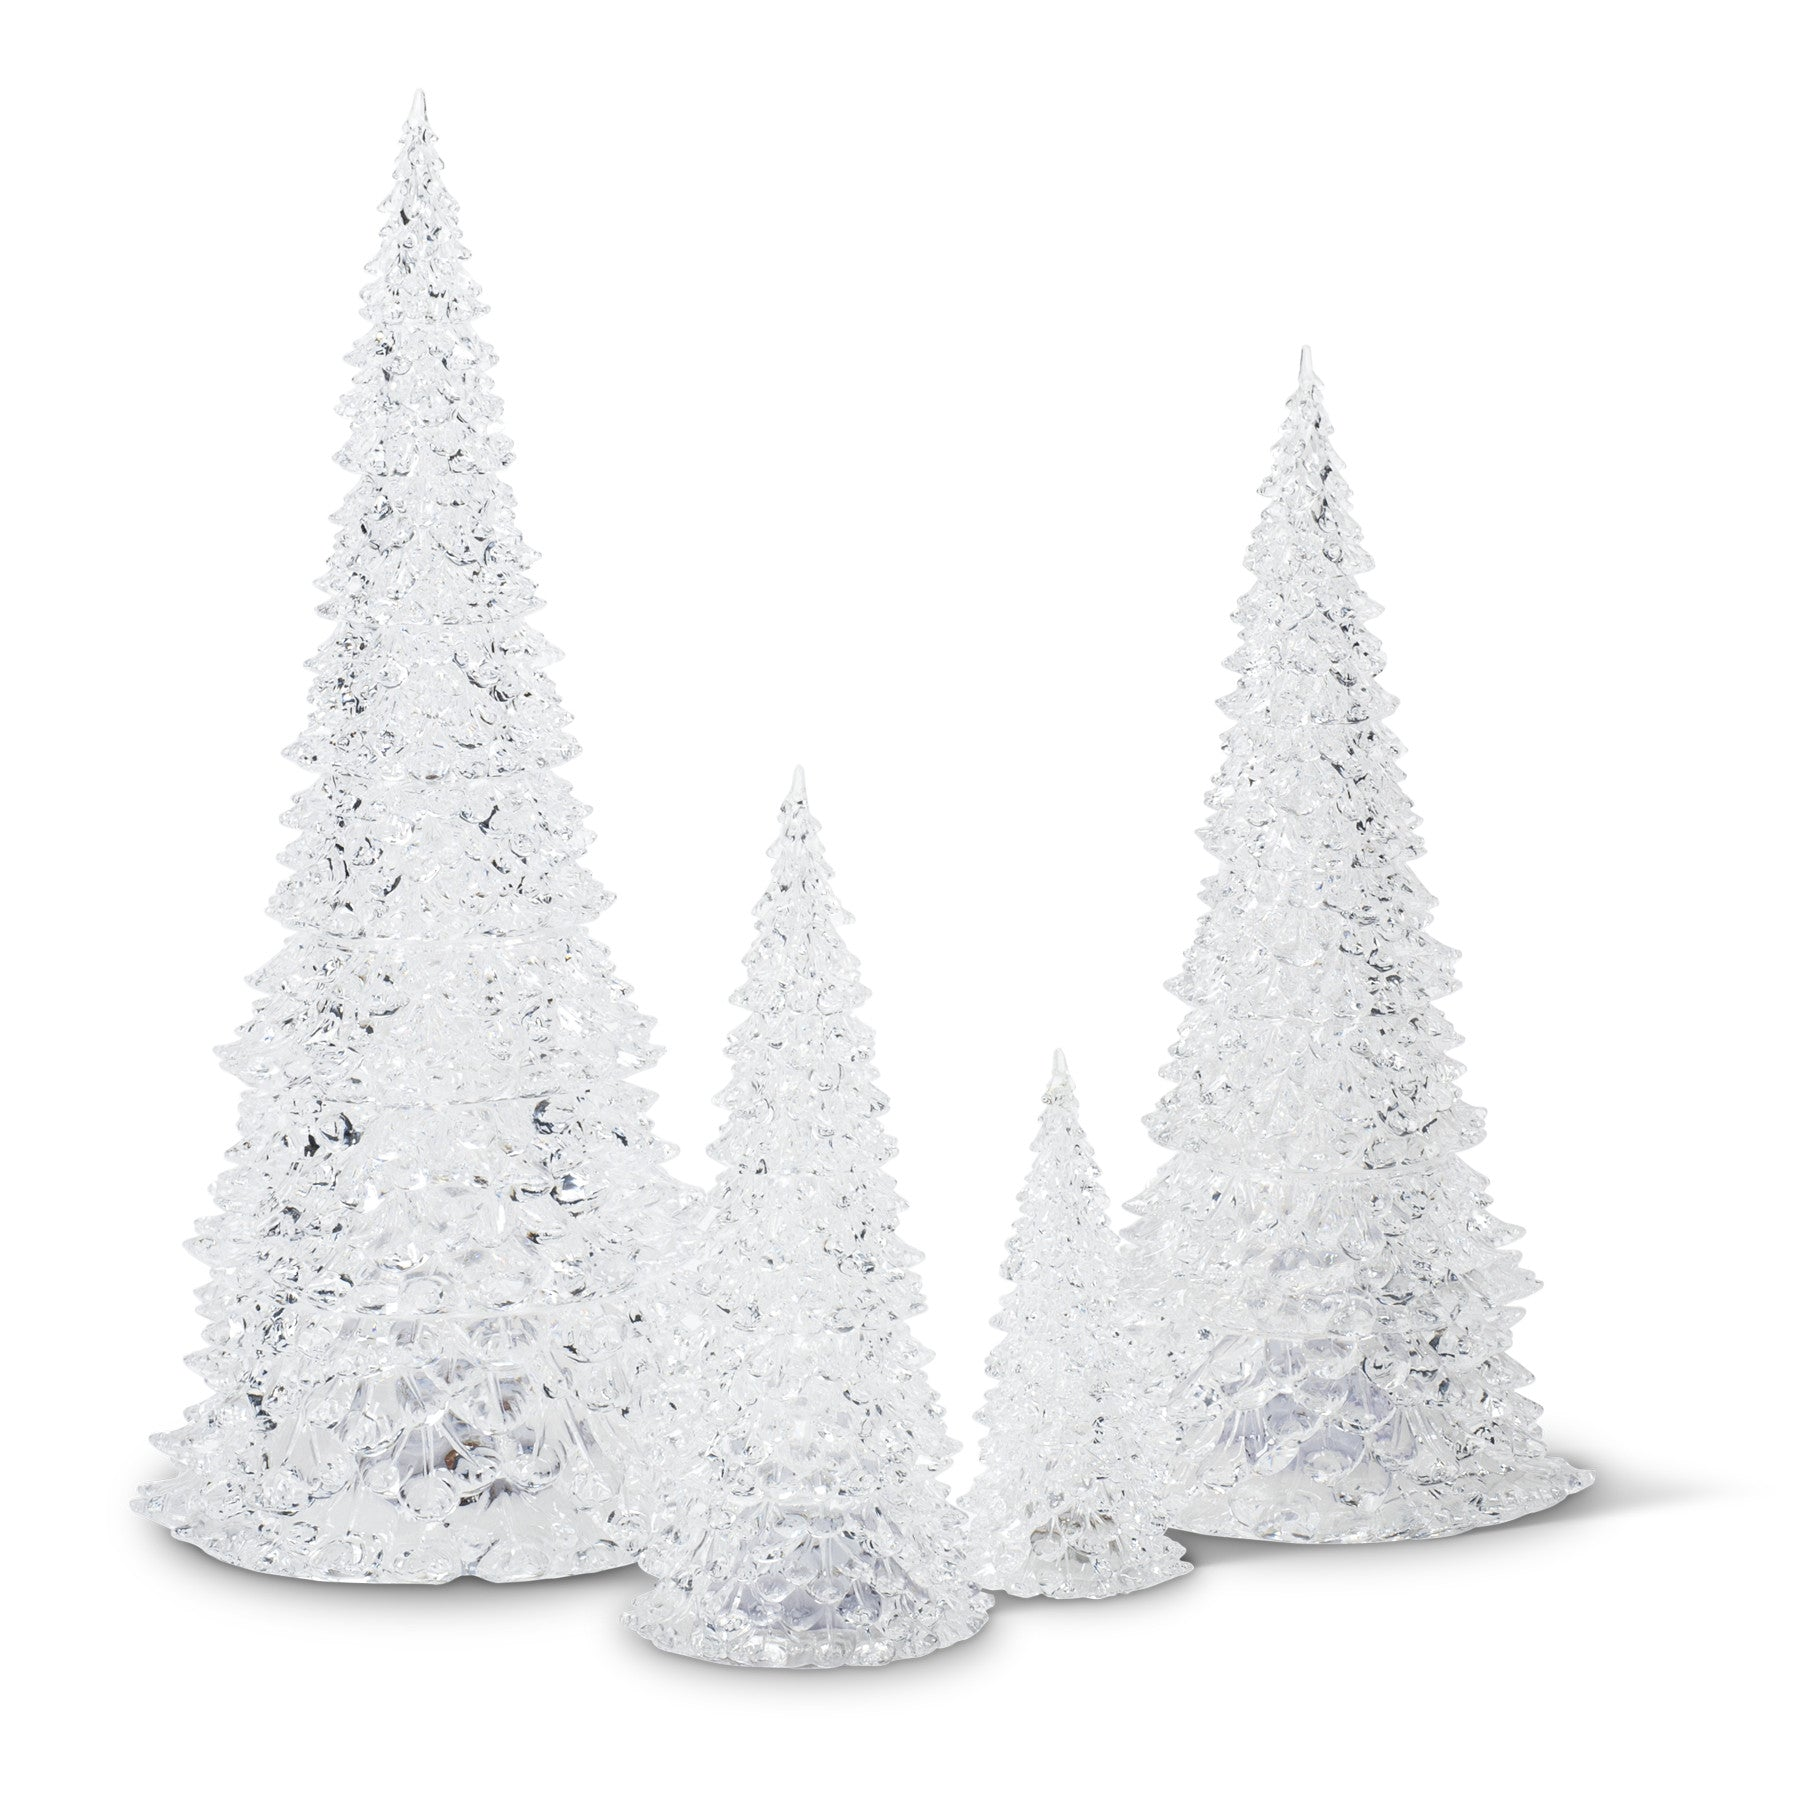 Ice Cone tree with LED Light - Medium -  Christmas - Abbot Collection - Putti Fine Furnishings Toronto Canada - 1